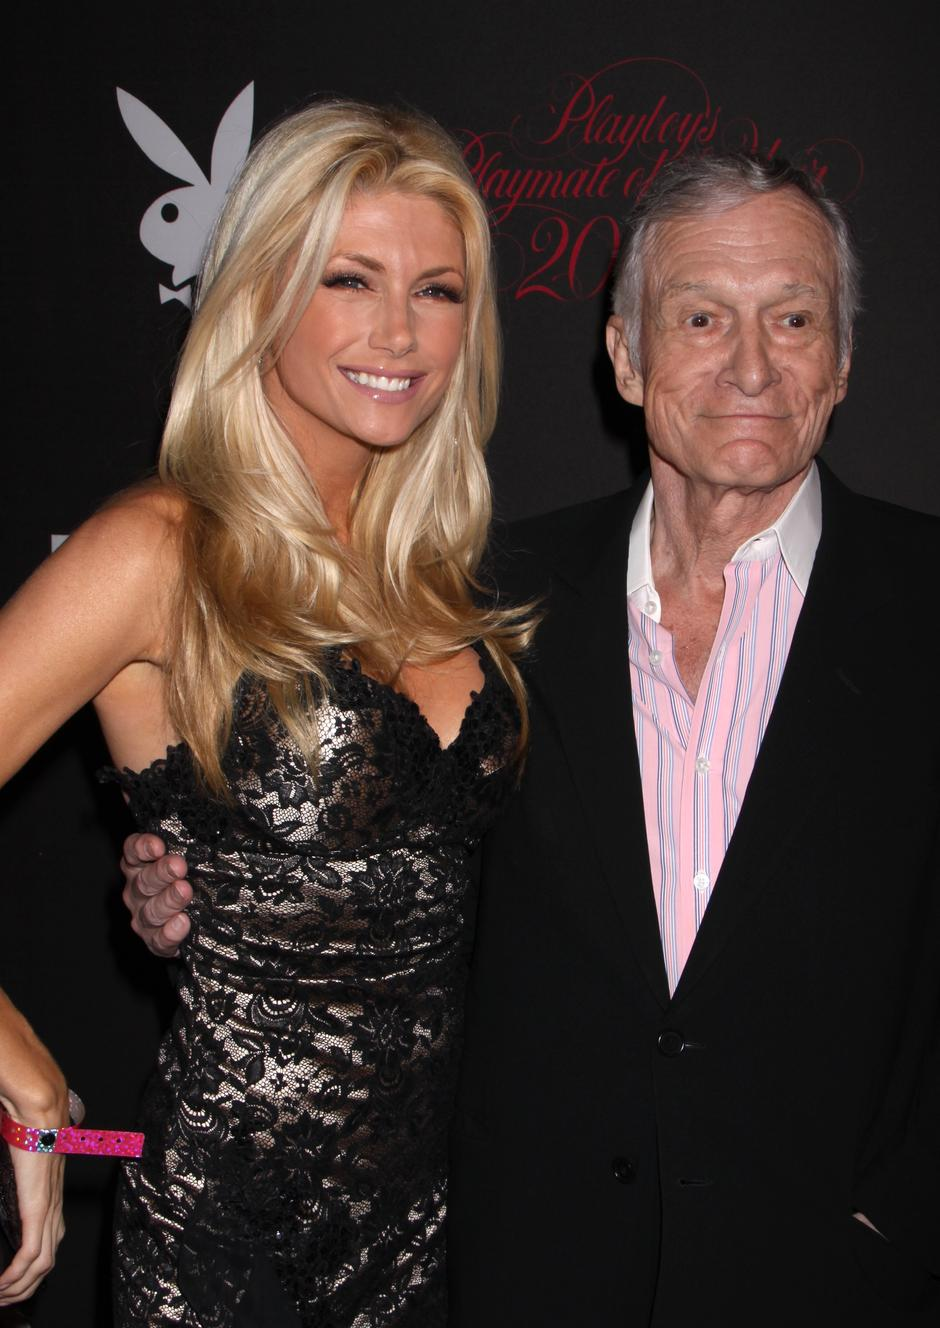 Playboy Playmate of the Year Announcement - Las Vegas | Autor: /Press Association/PIXSELL